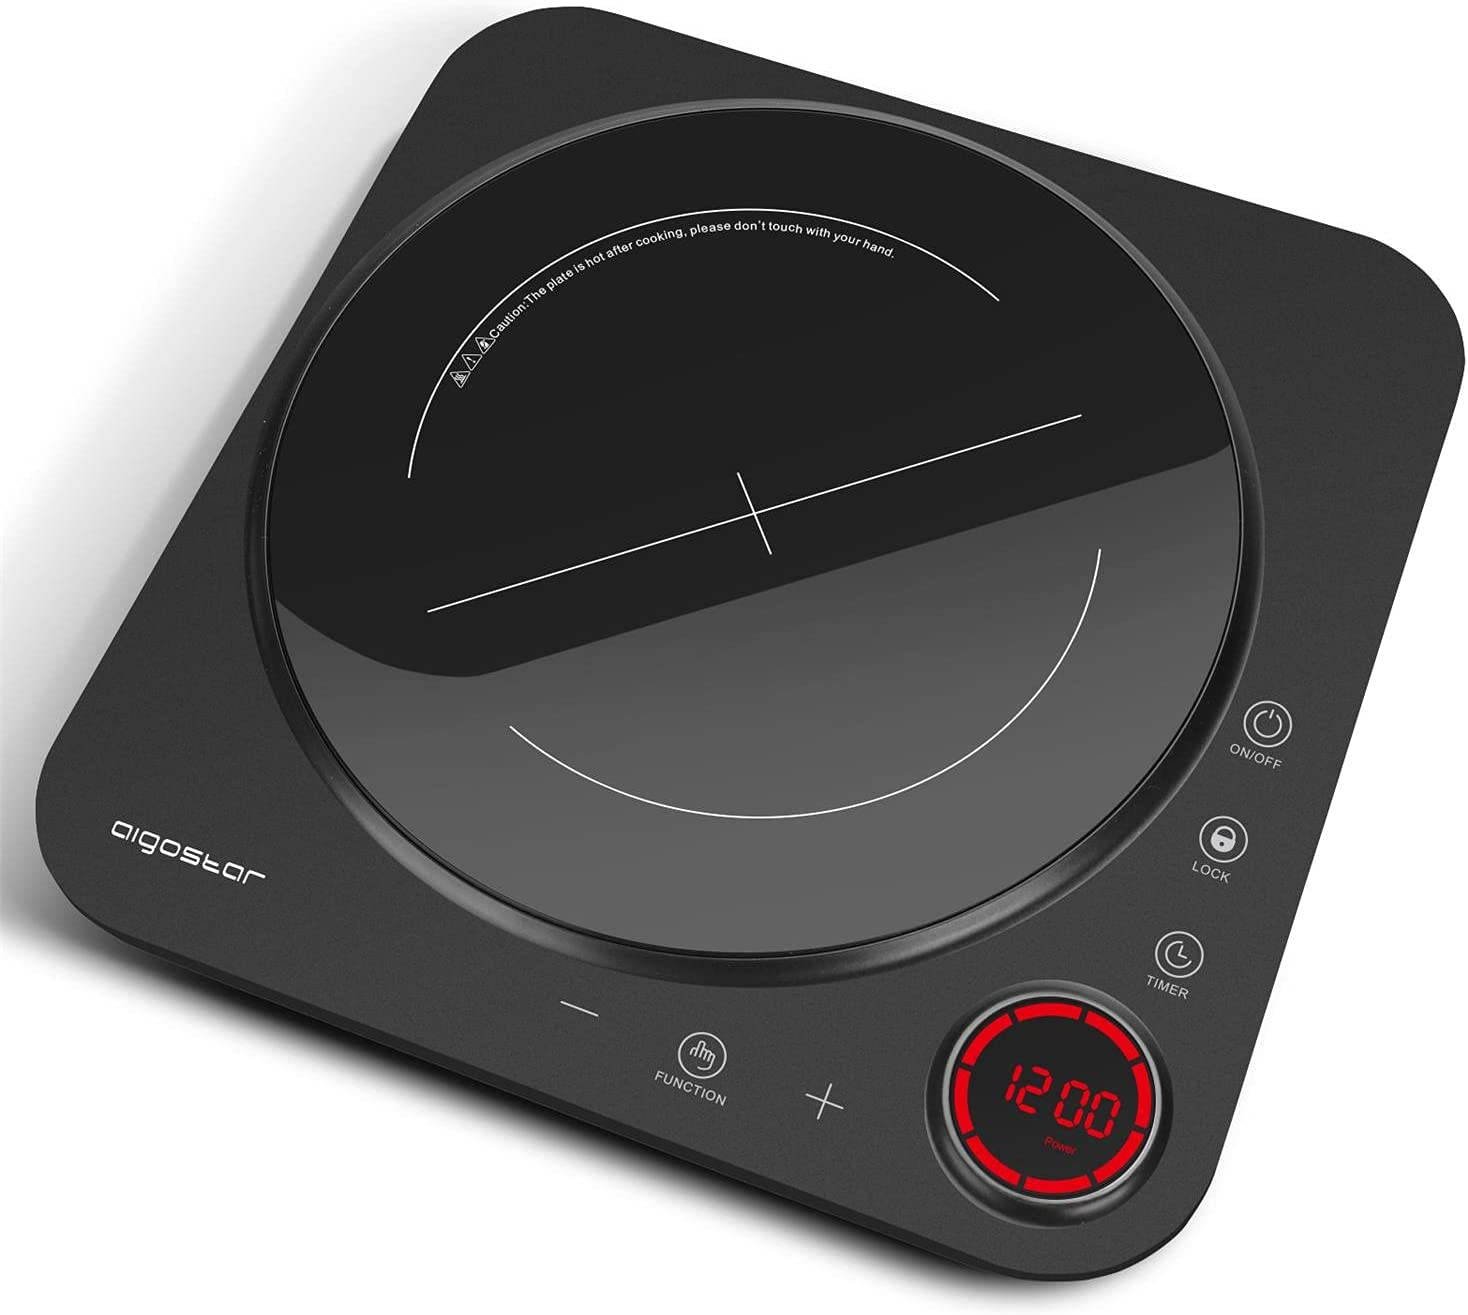 Aigostar Portable Induction Cooktop, Induction Burner with 8 Level Temperature ?Setting, LED Display, Sensor Touch, Timer, Countertop Burner 1500W with Child Safety Lock, Auto-Shut-Off, Rapid Heating